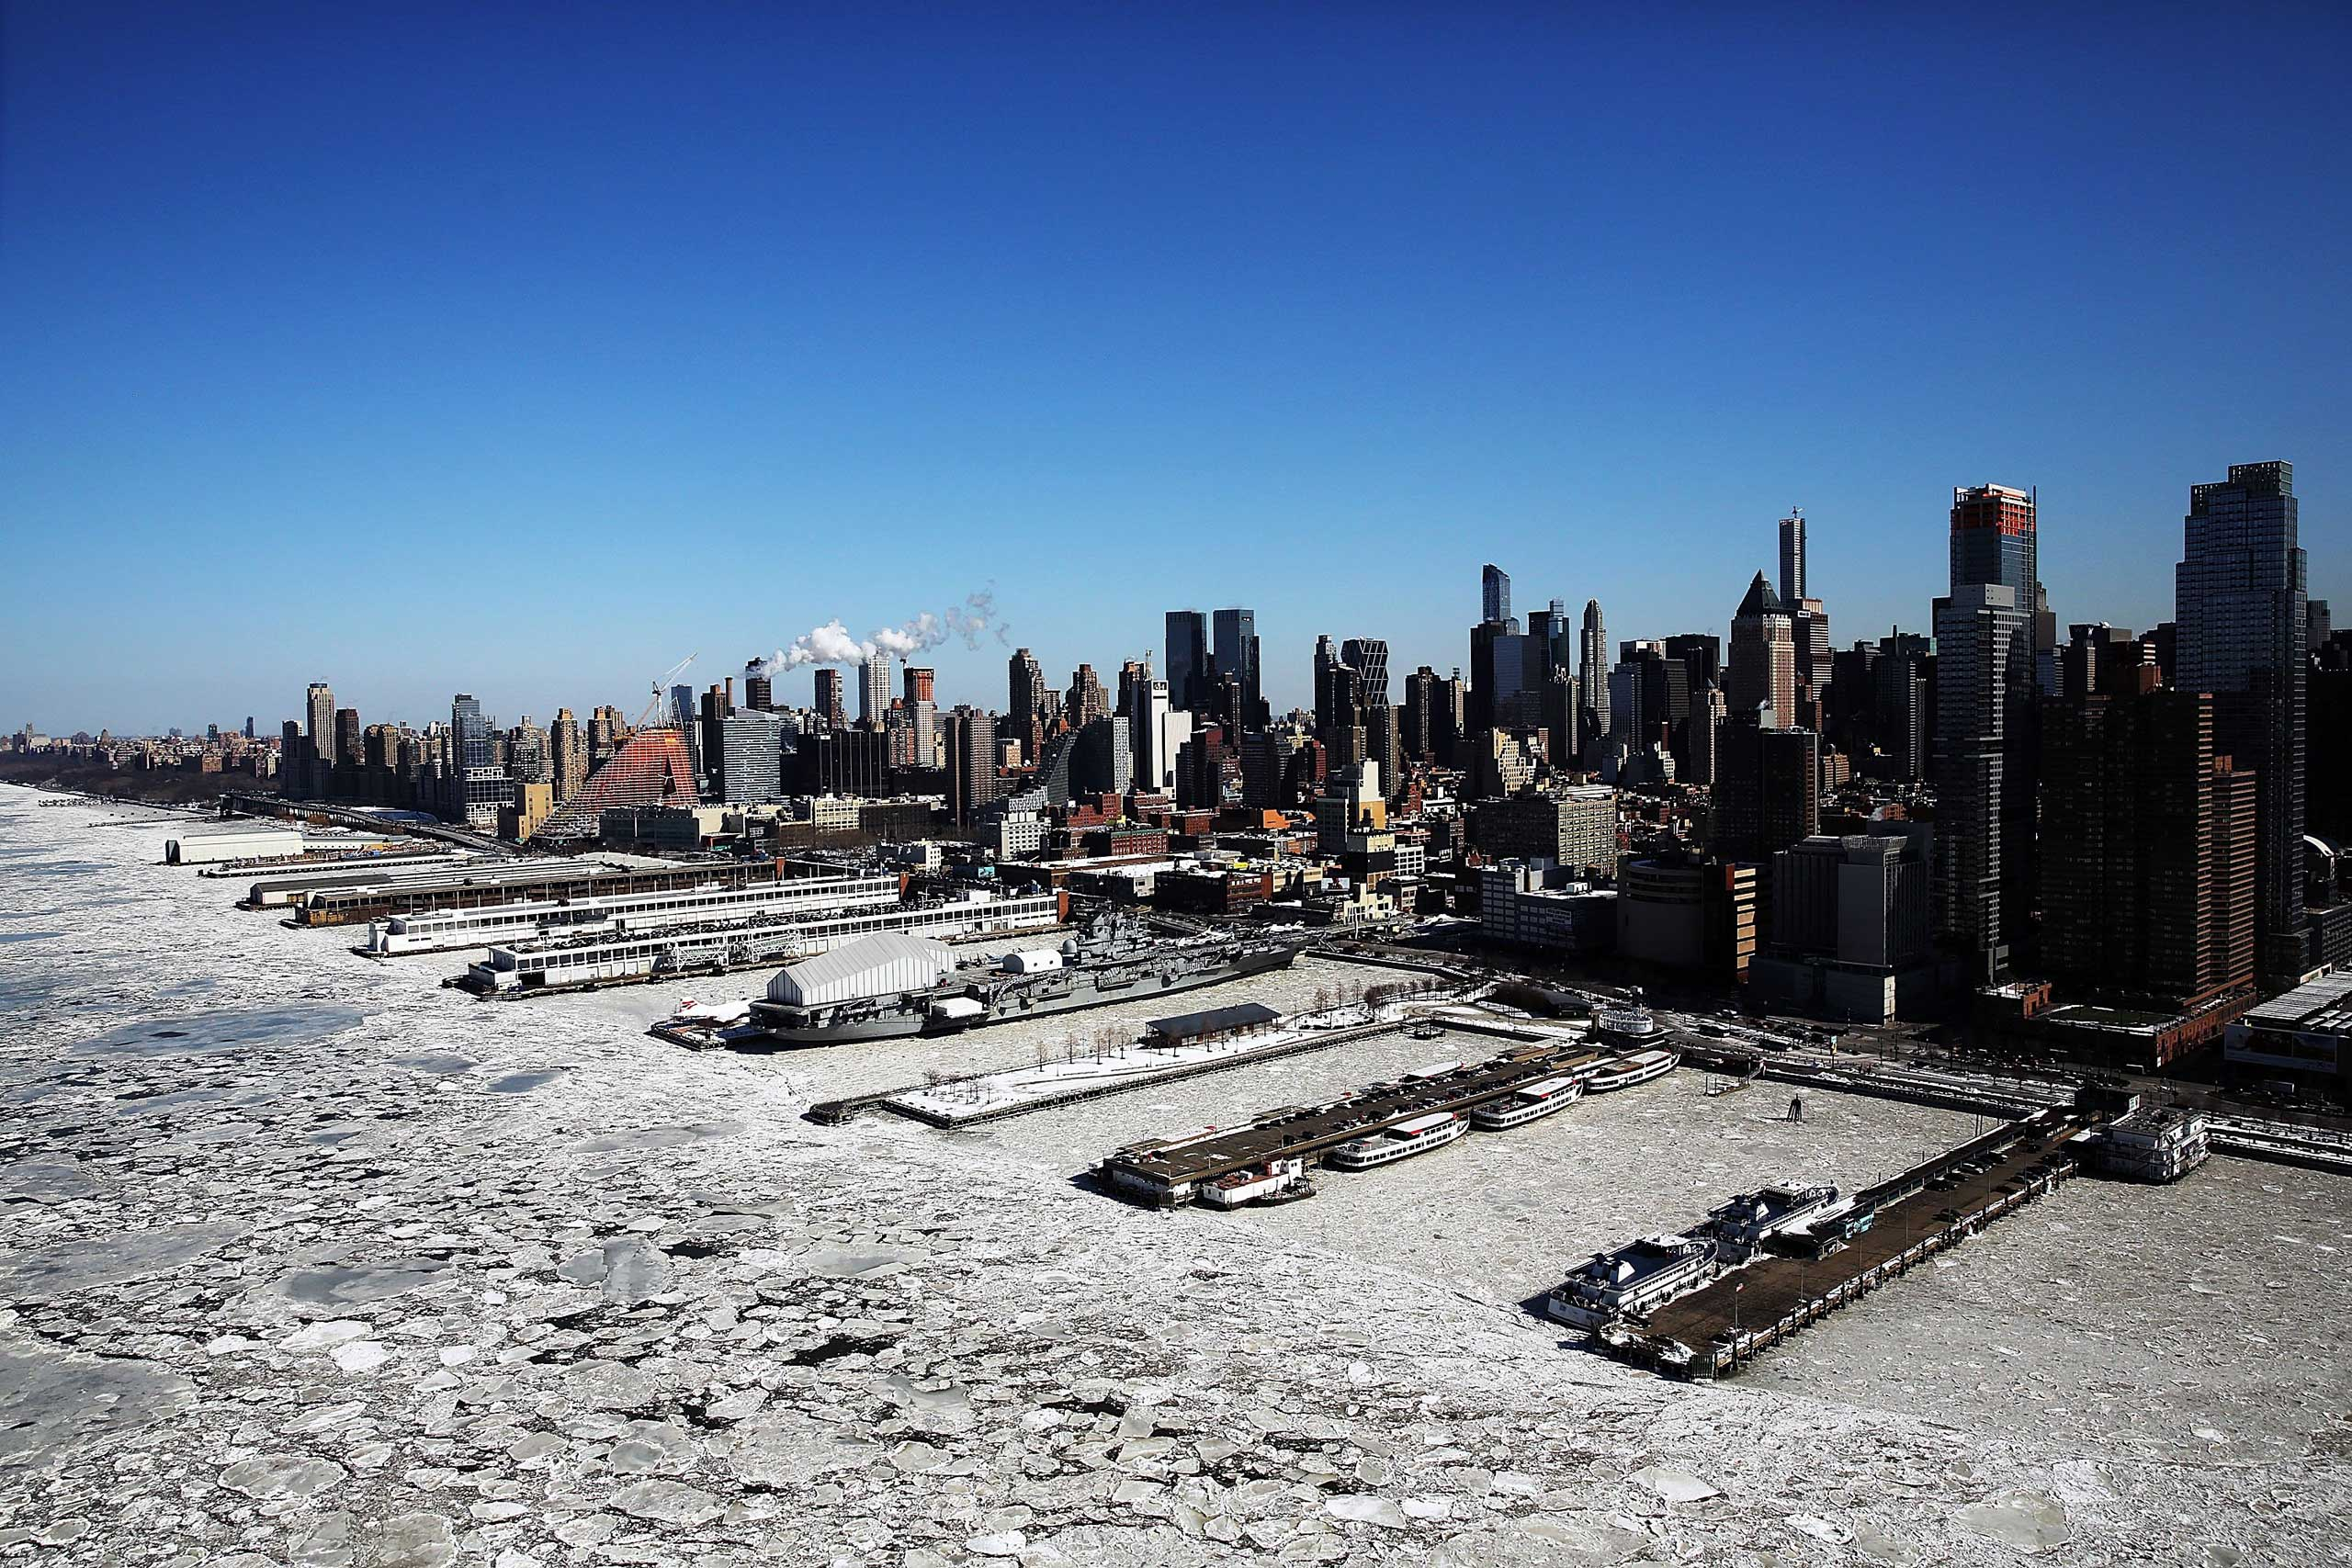 Ice flows along the Hudson River in New York City on Feb. 20, 2015.